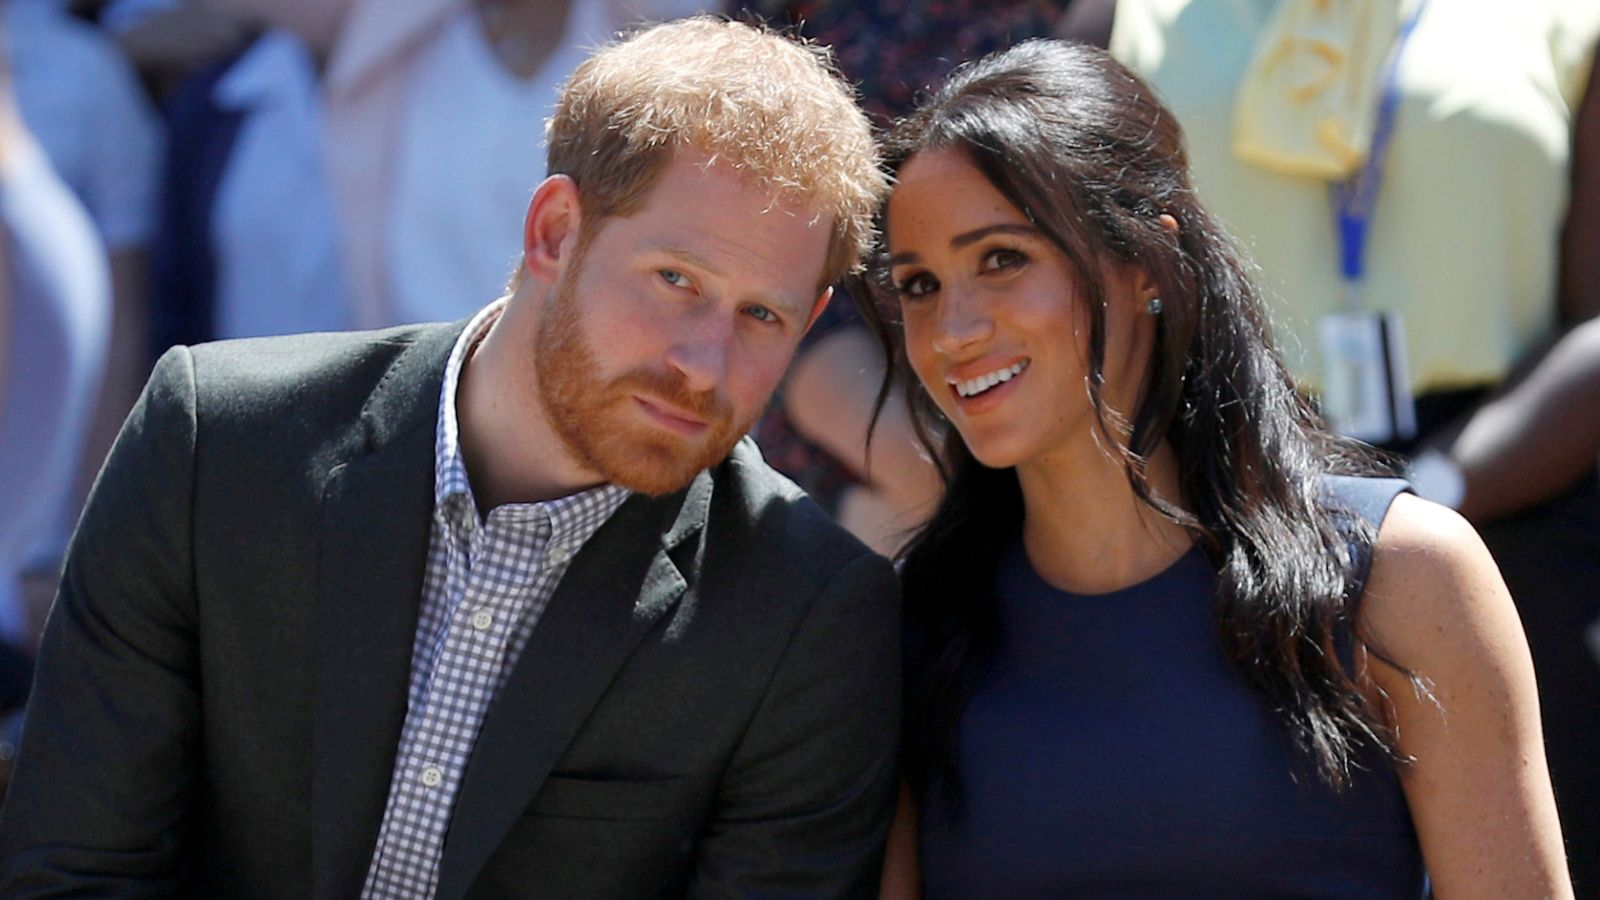 Harry and Meghan's final UK public engagements as full royals revealed